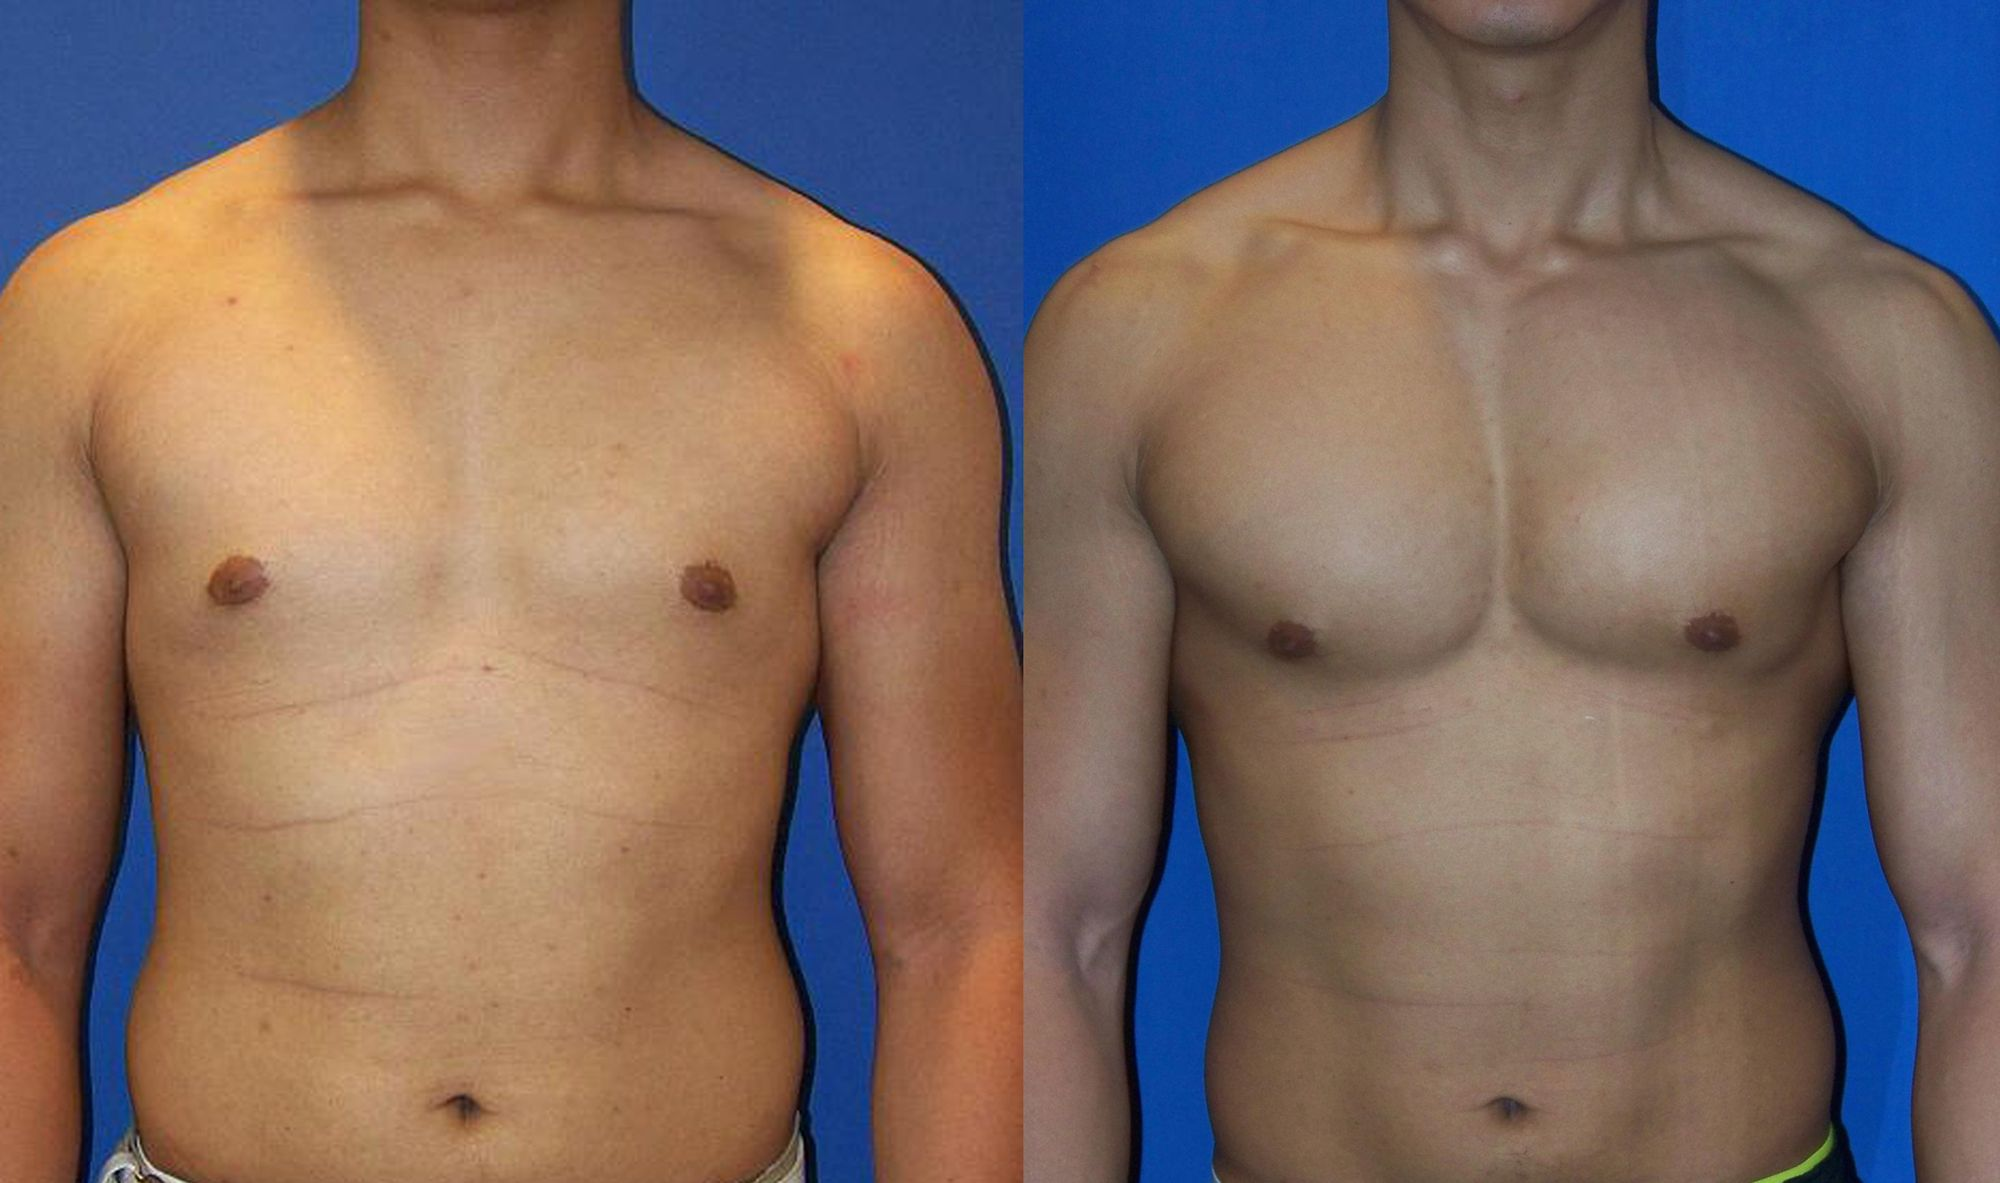 Pectoral prosthesis - Picture 1